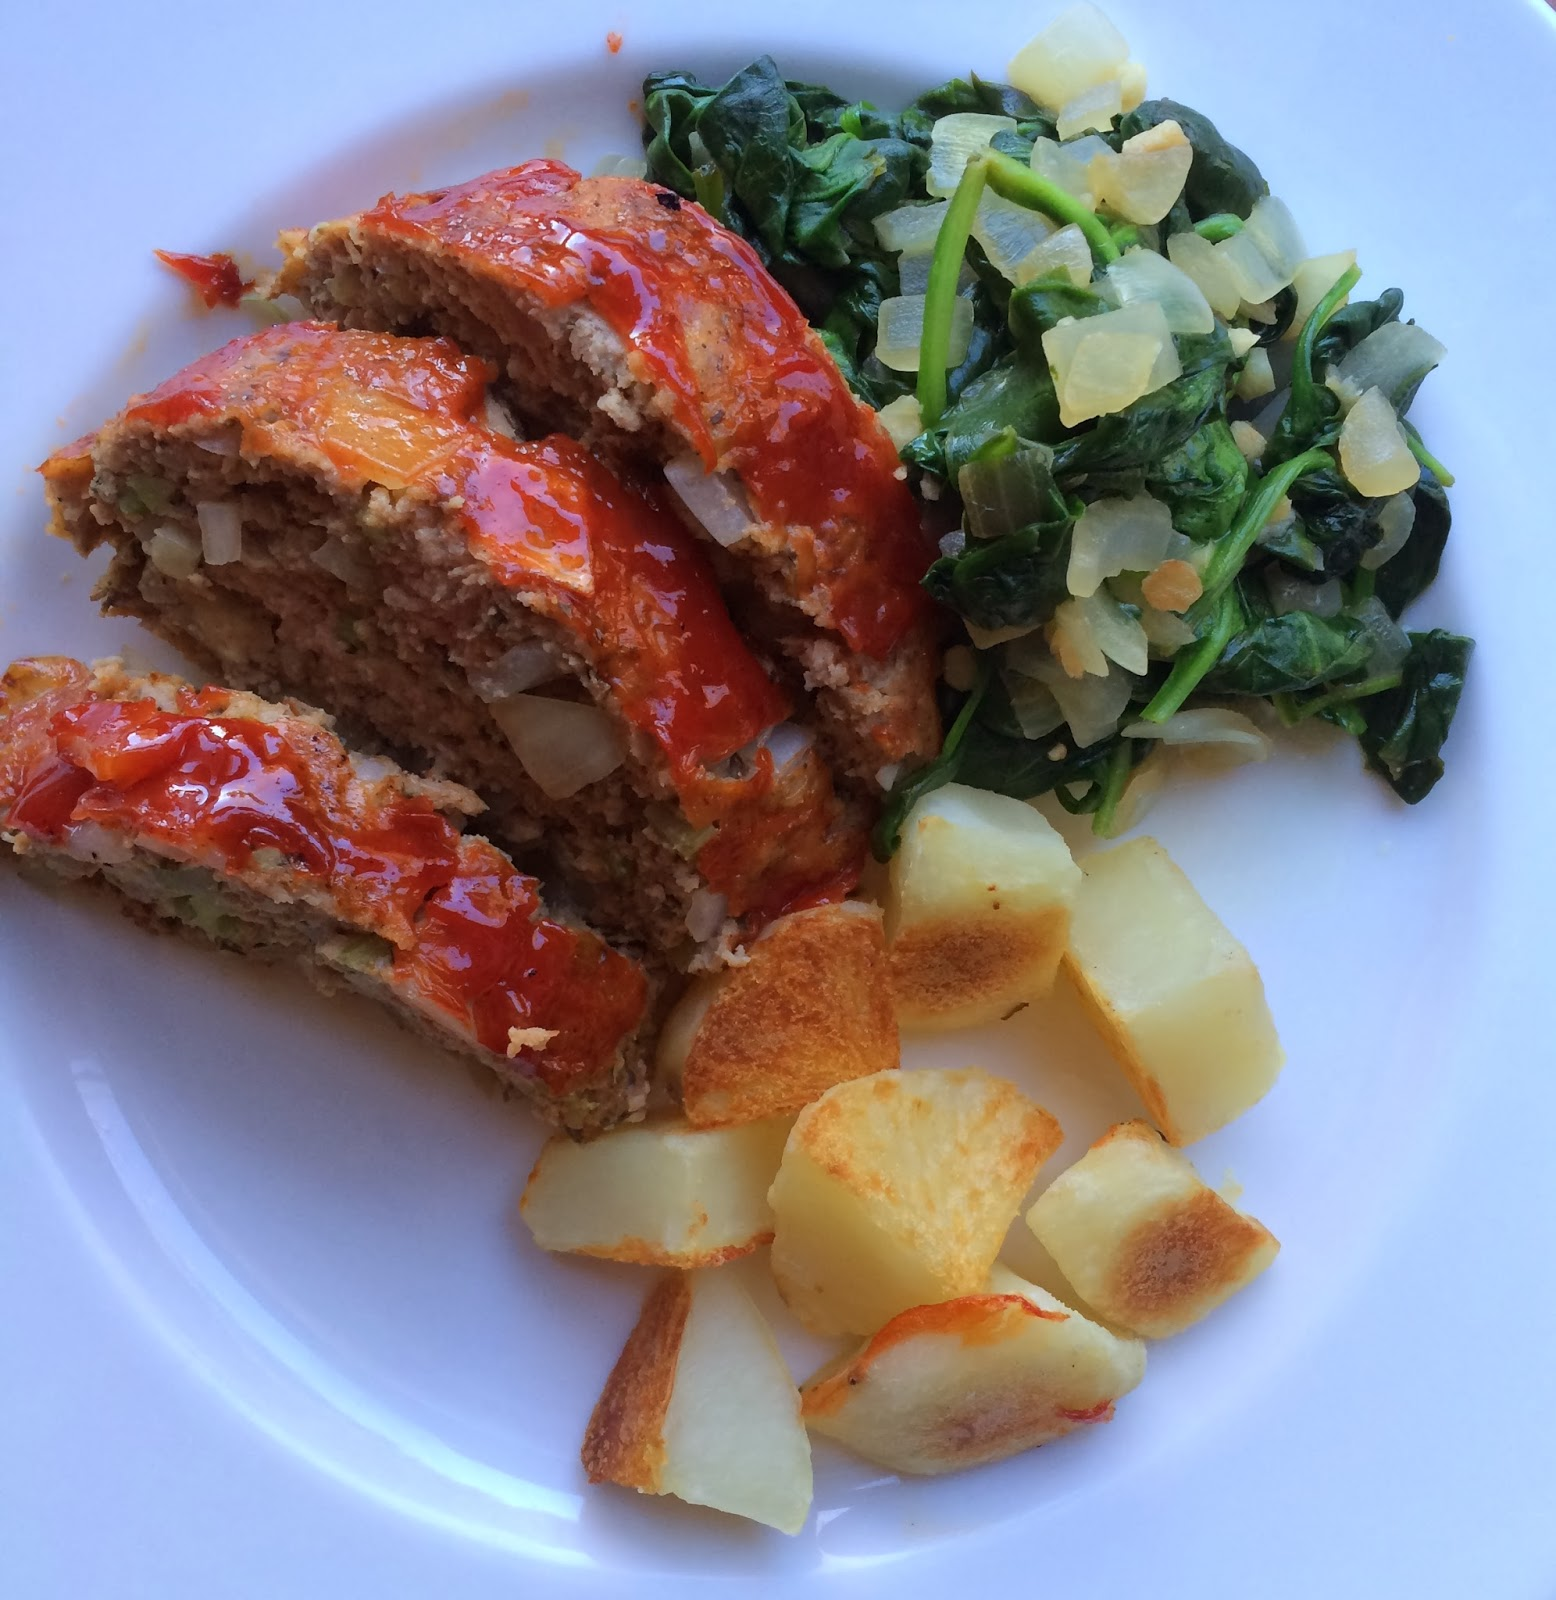 Top Ate on Your Plate Blue Apron Review: Turkey Meatloaf